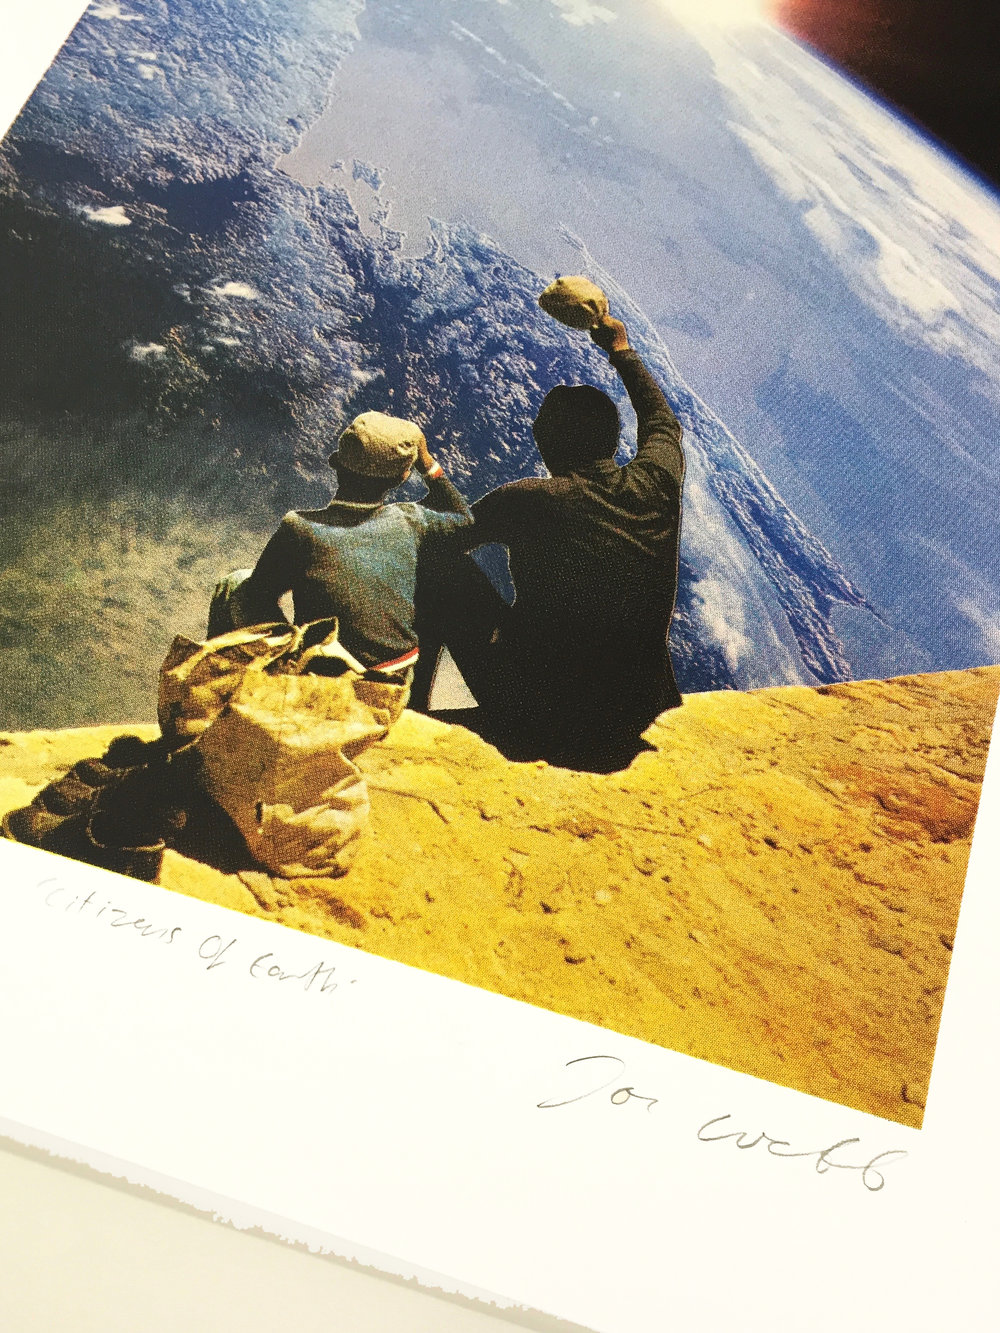 Joe Webb 'Citizens of Earth'